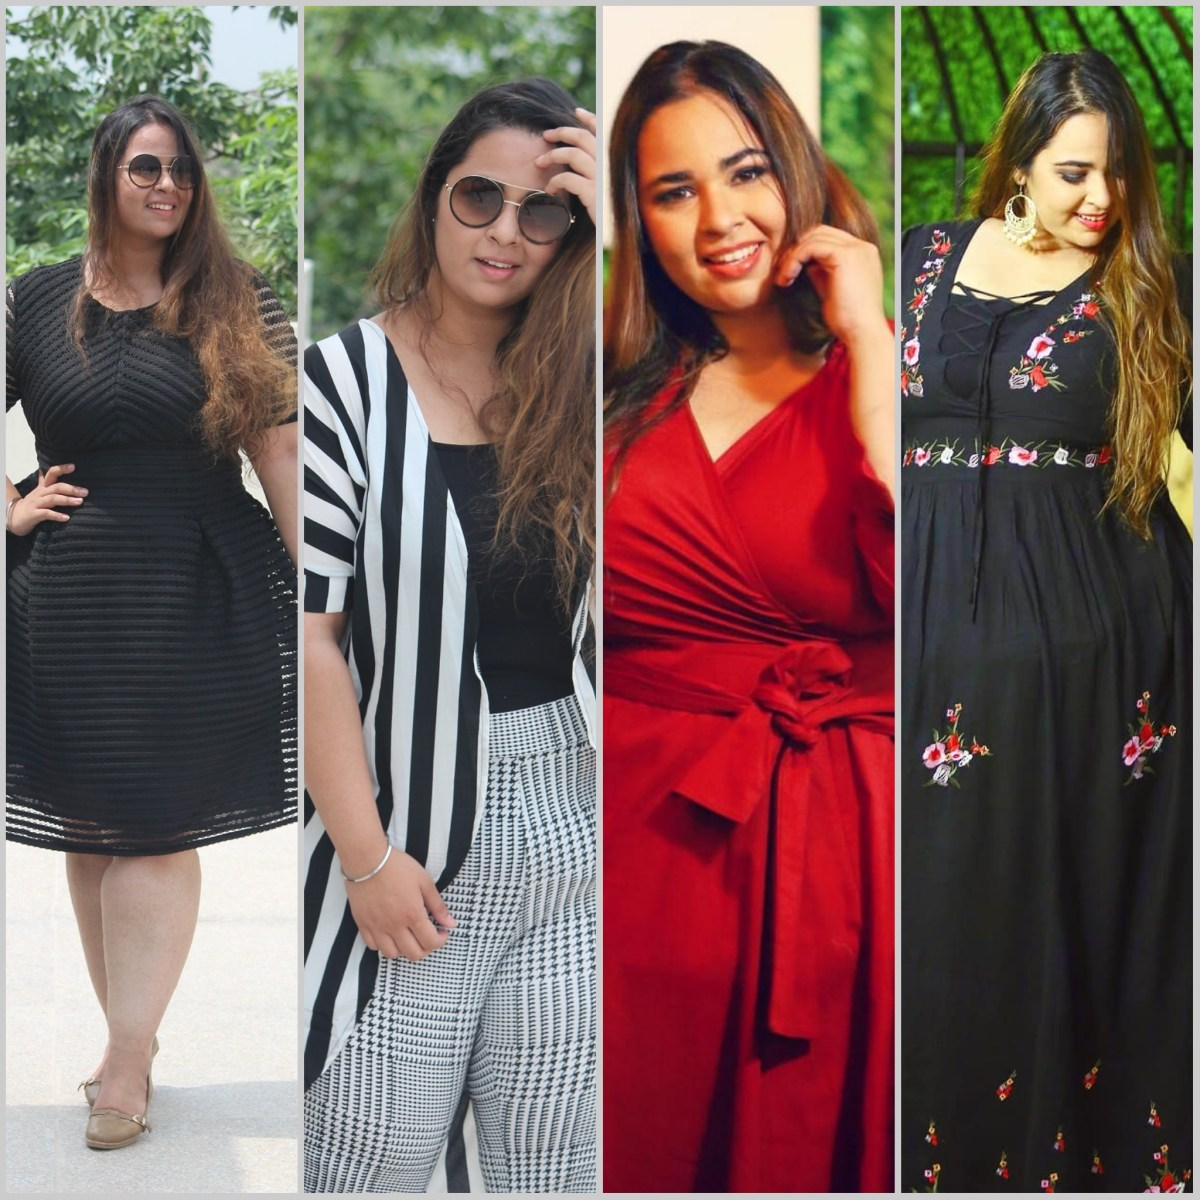 SHEIN Plus Size--My Experience, Selections and Reviews.